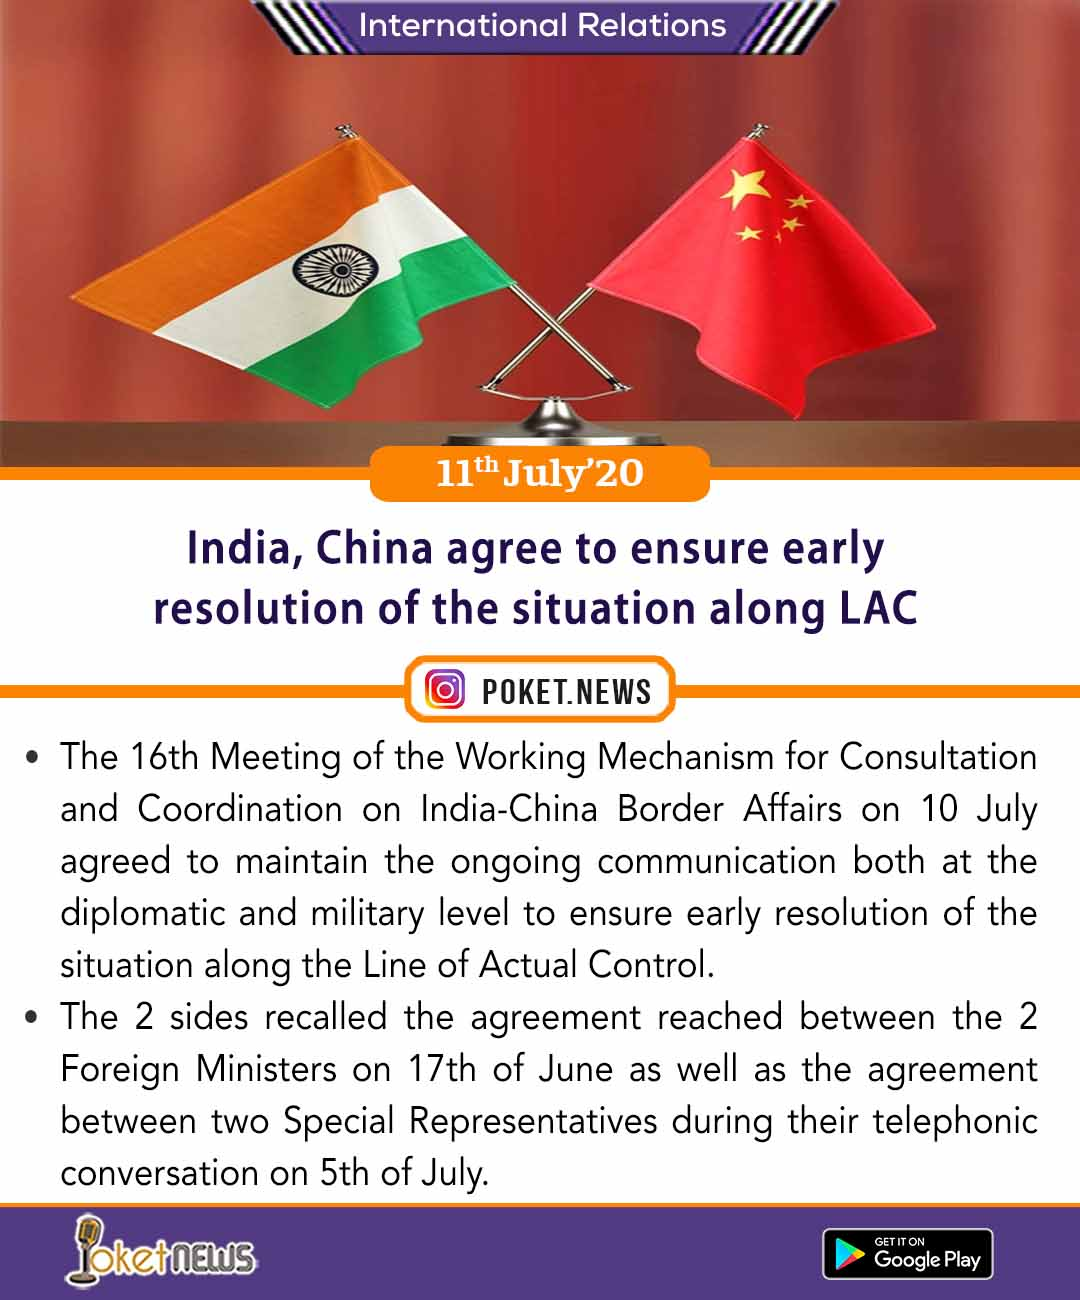 India, China agree to ensure early resolution of the situation along LAC